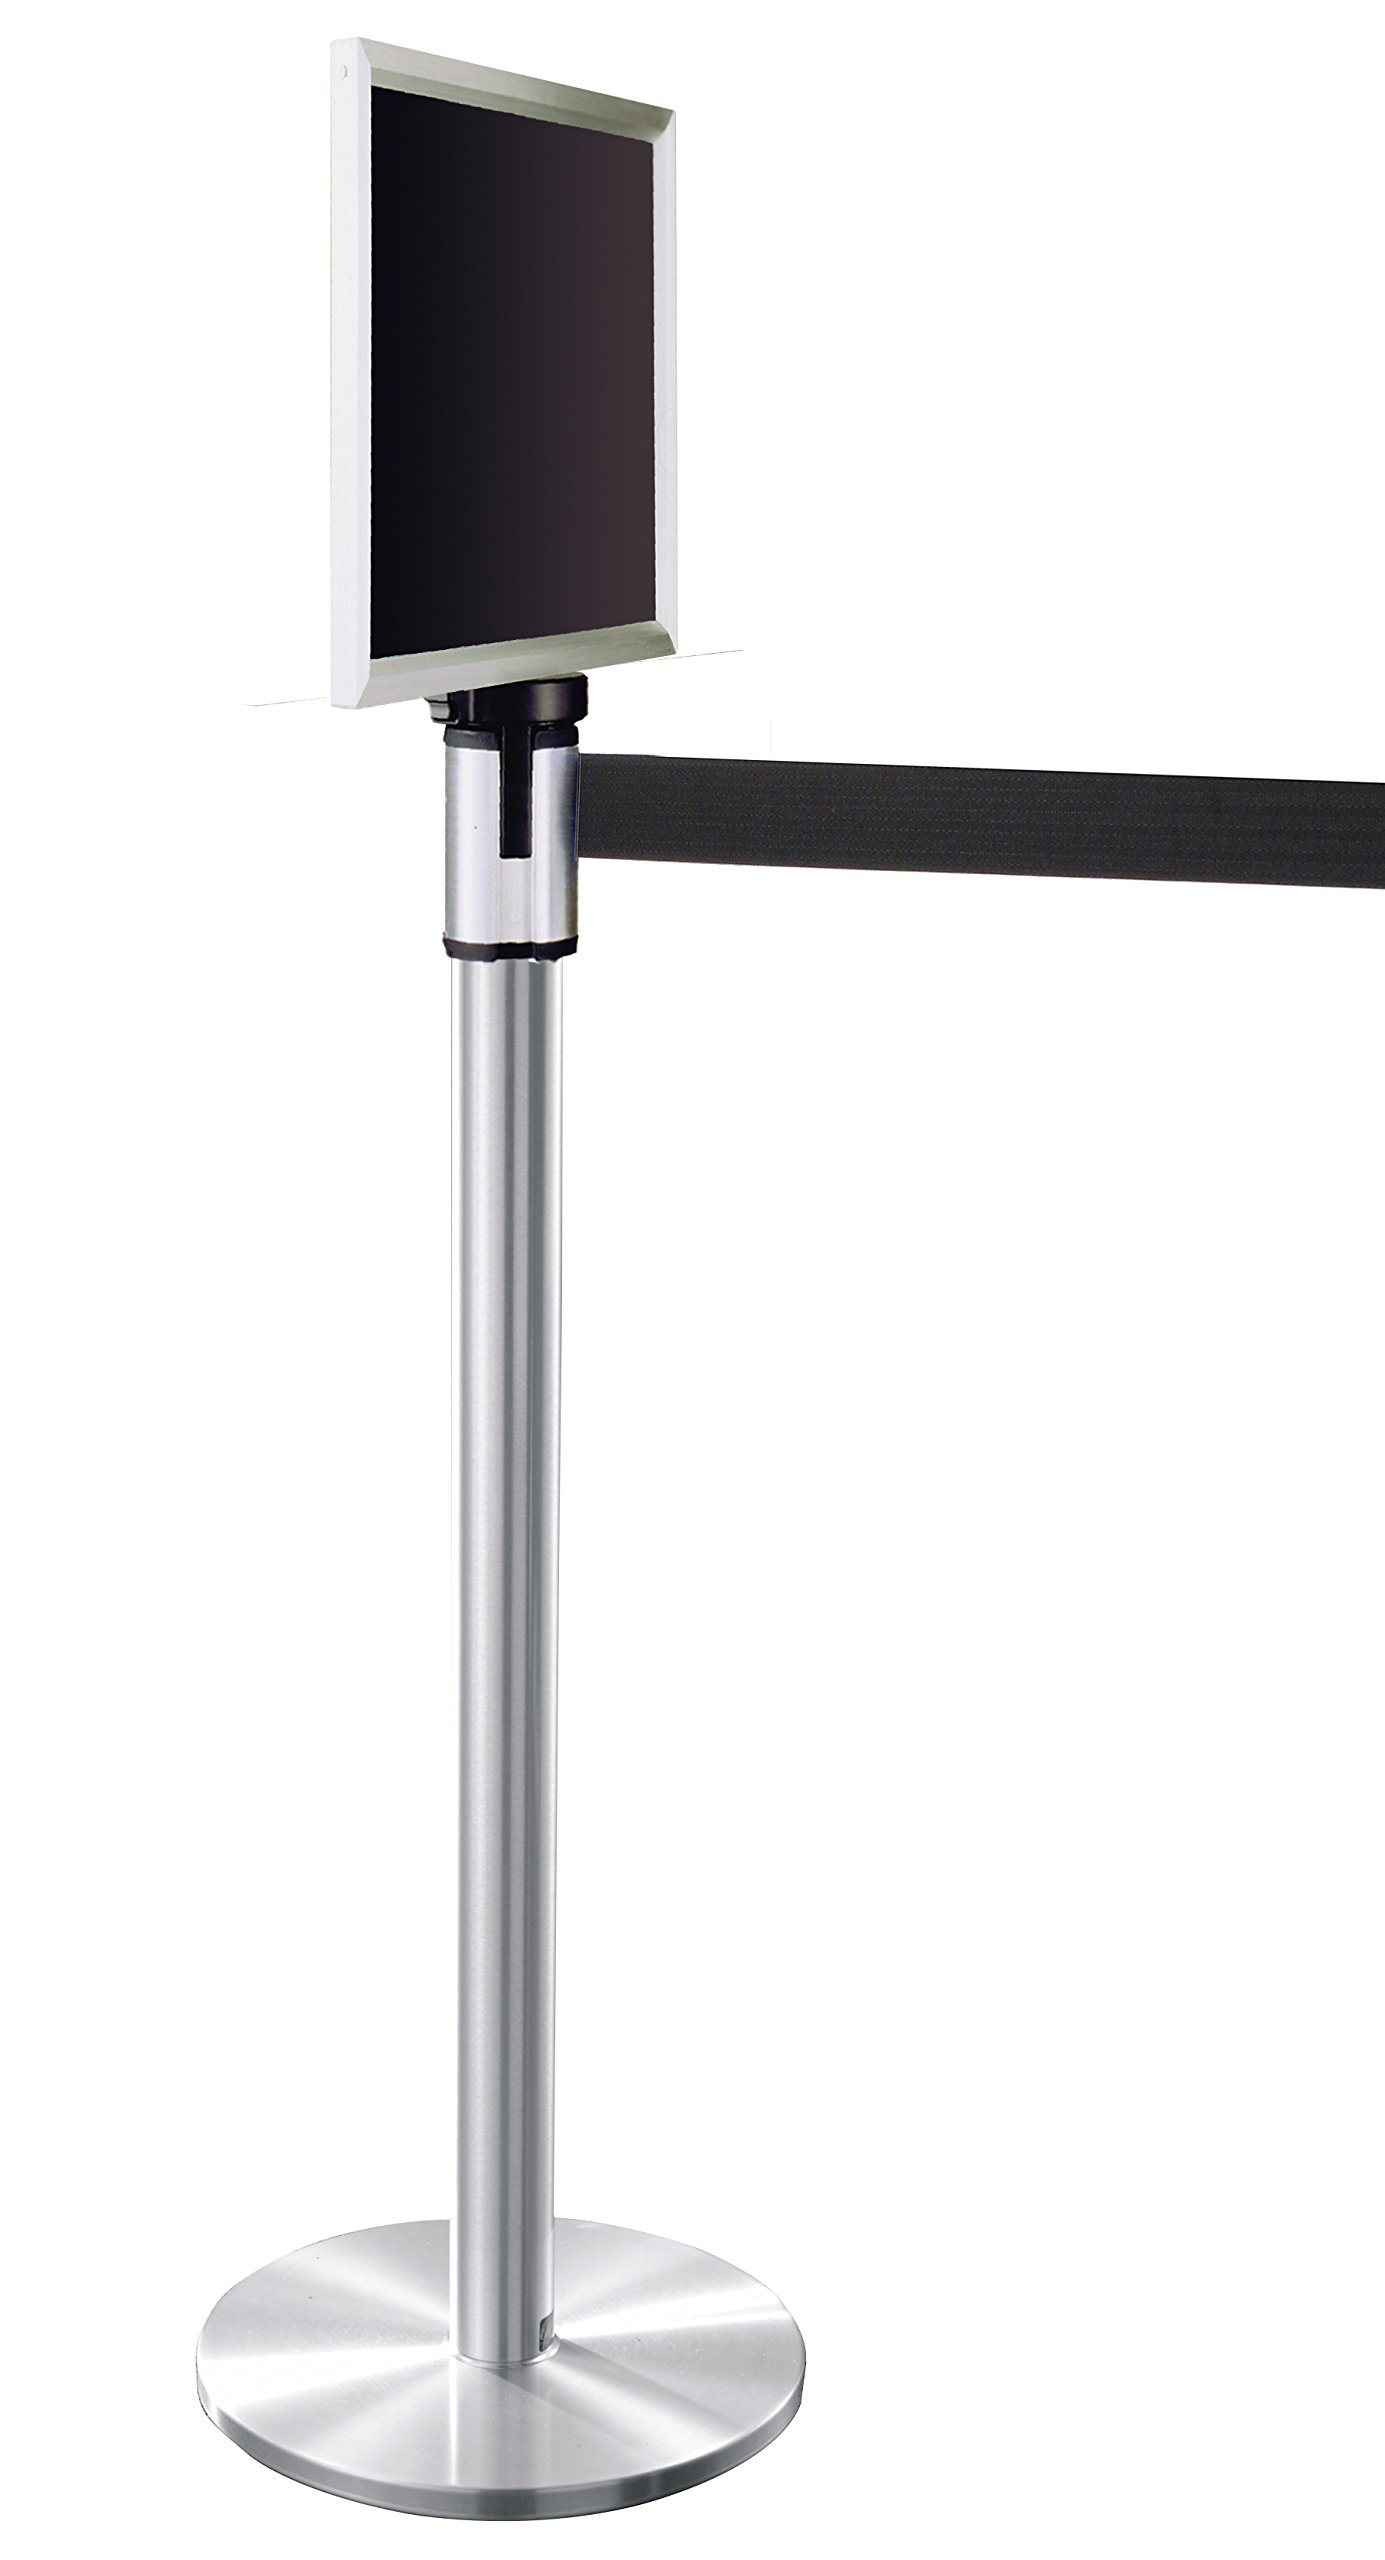 Glaro 152SA-BK-EXL1411SA 13' Retractable Belt Crowd Control Post - Satin Aluminum finish - Black Belt - Satin Aluminum Sign Frame Included